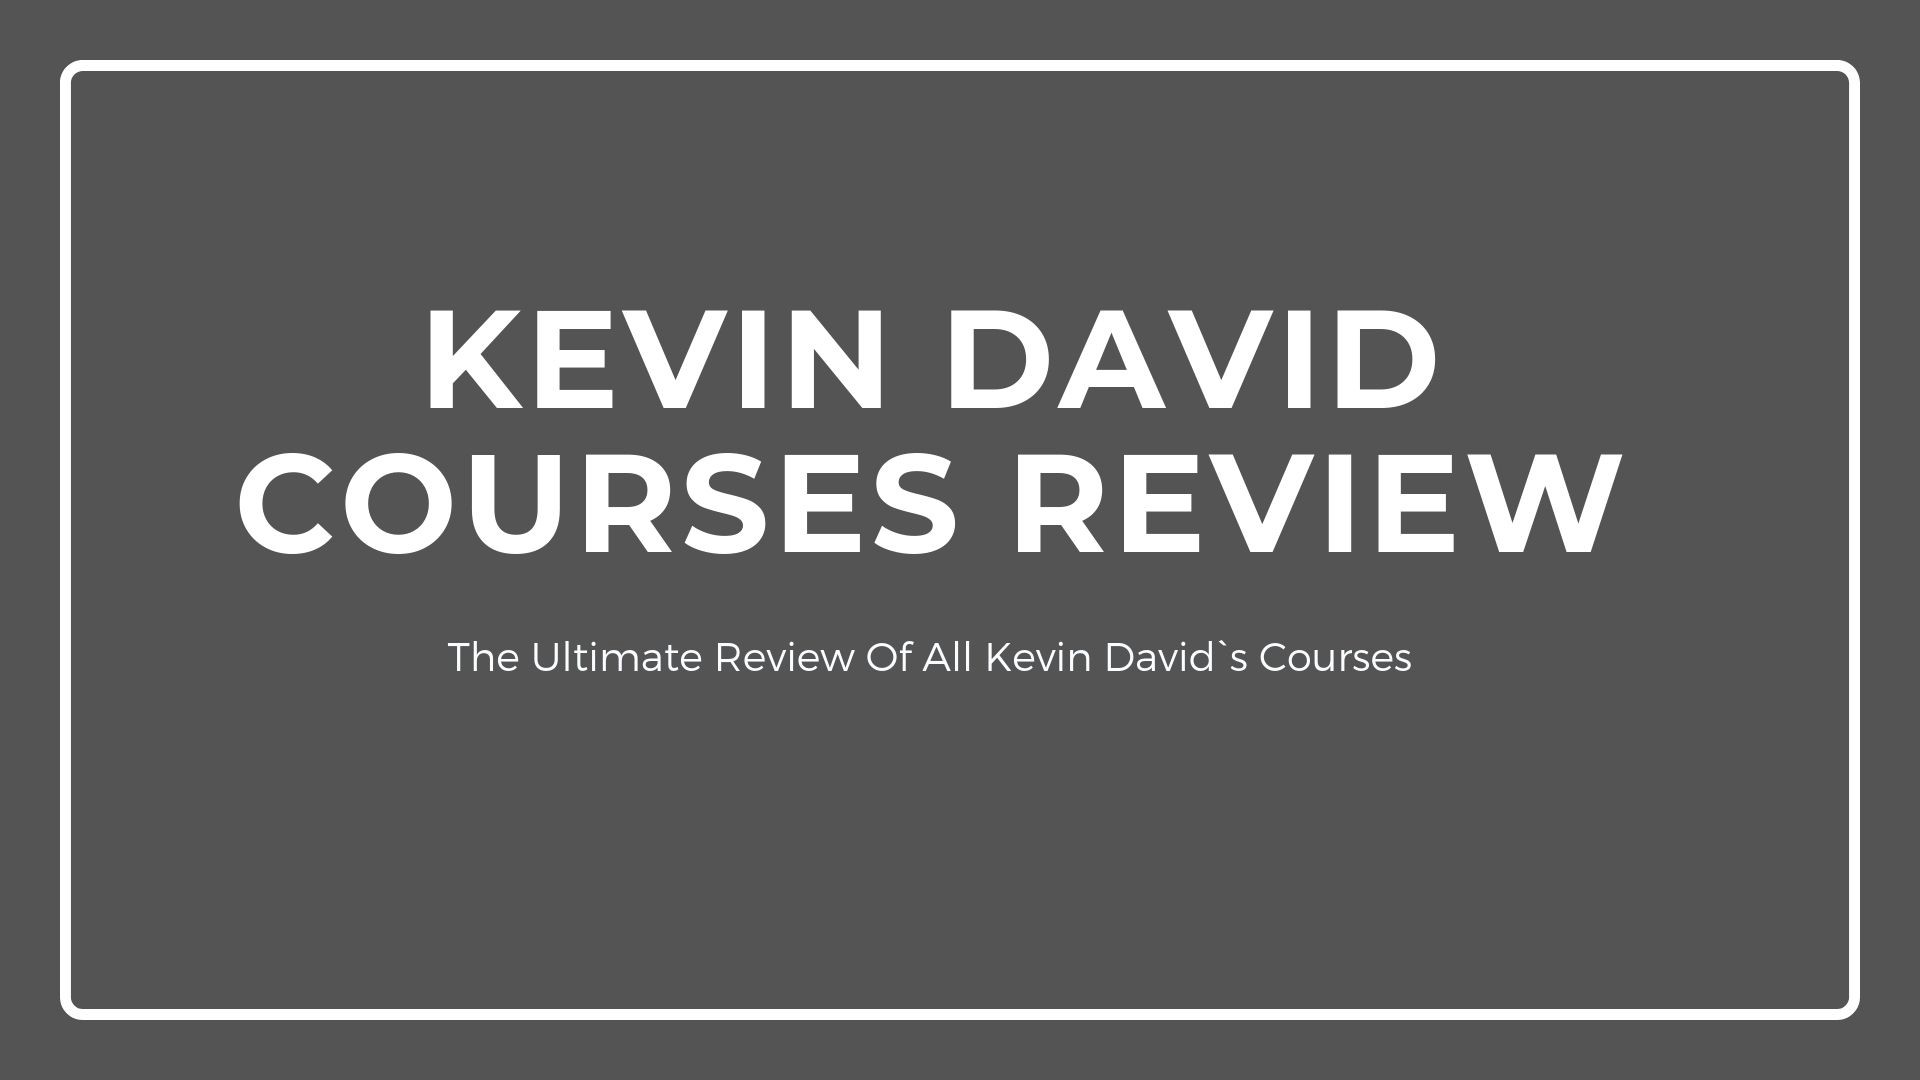 Kevin David courses review